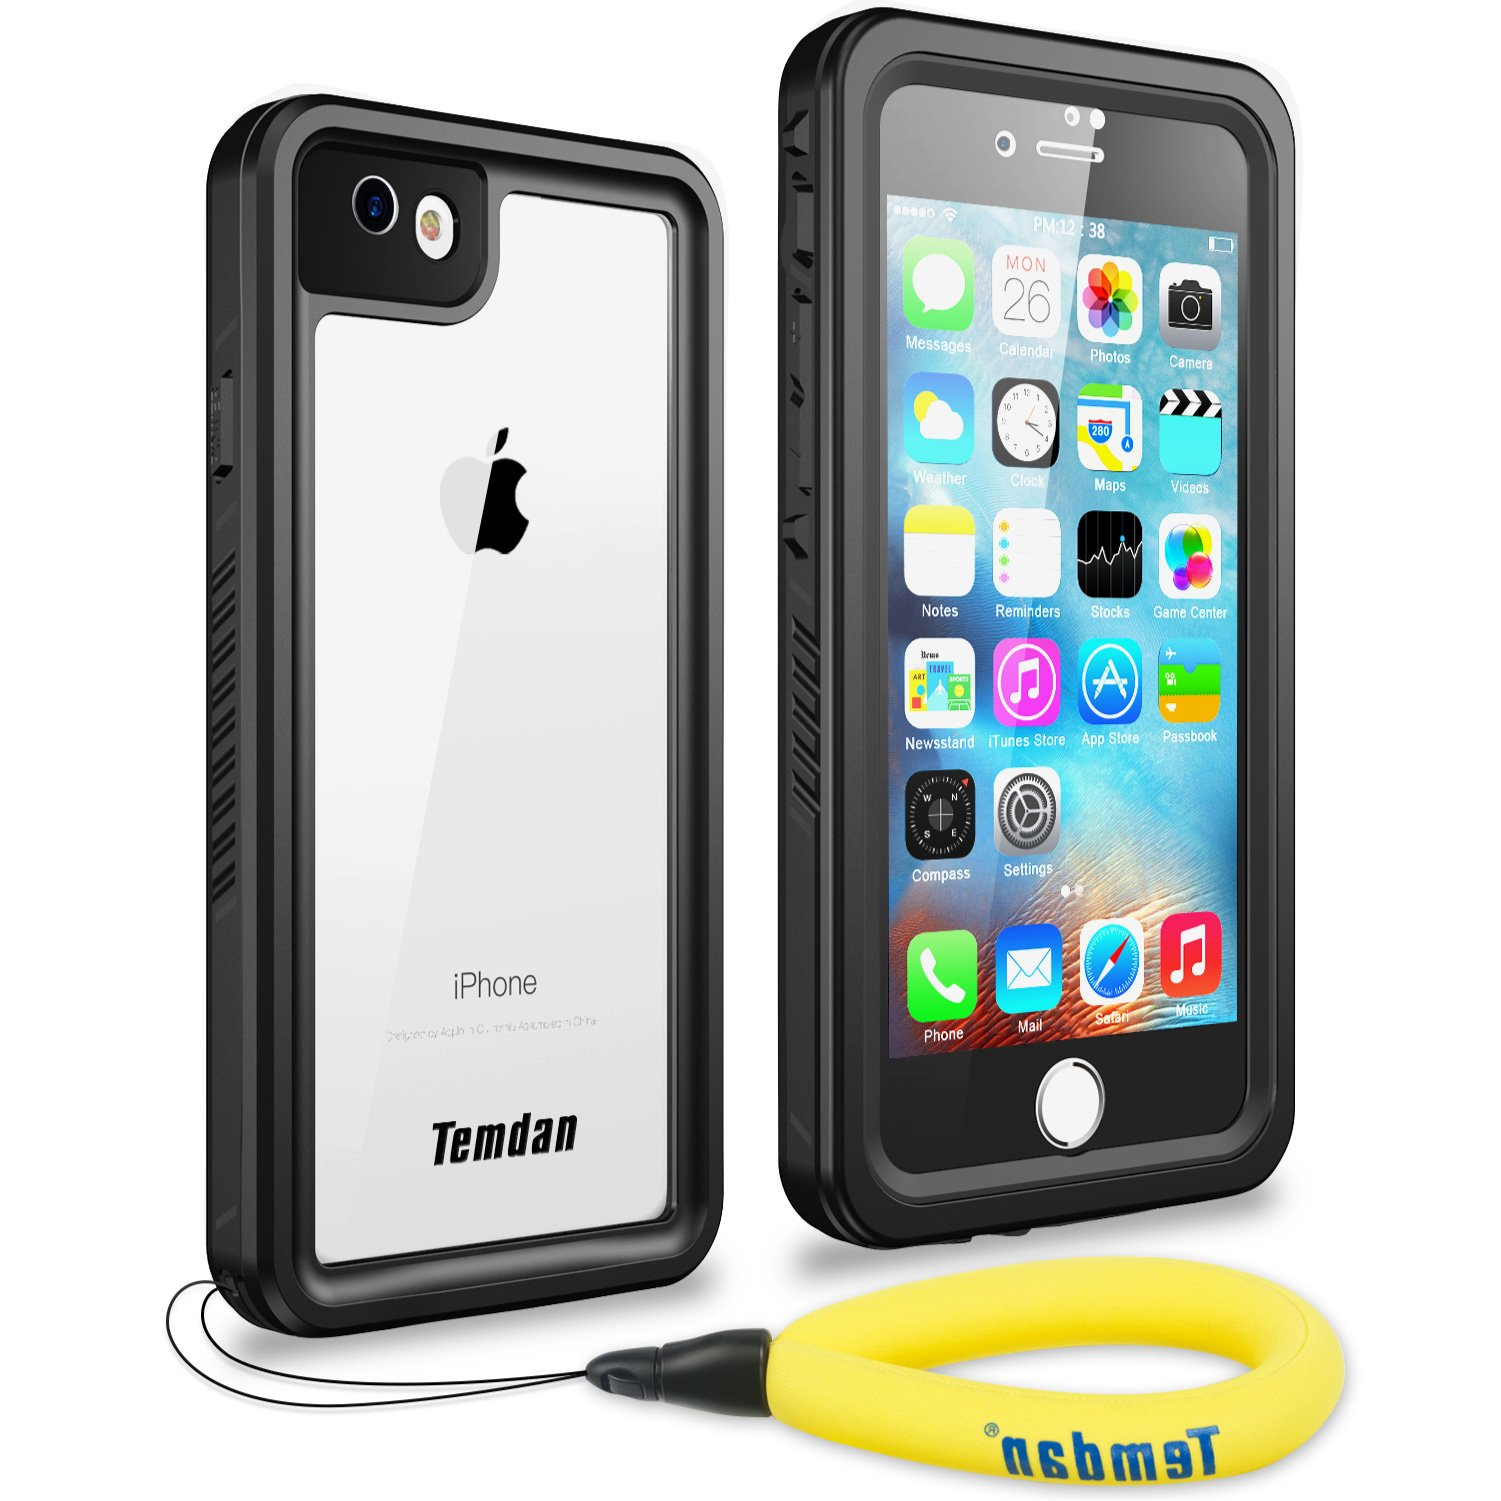 Temdan iPhone 7/8 Waterproof Case with Floating Strap and Kickstand Built in Screen Protector Snowproof Shockproof Underwater Case for iPhone 7 and iPhone 8(BLACK)